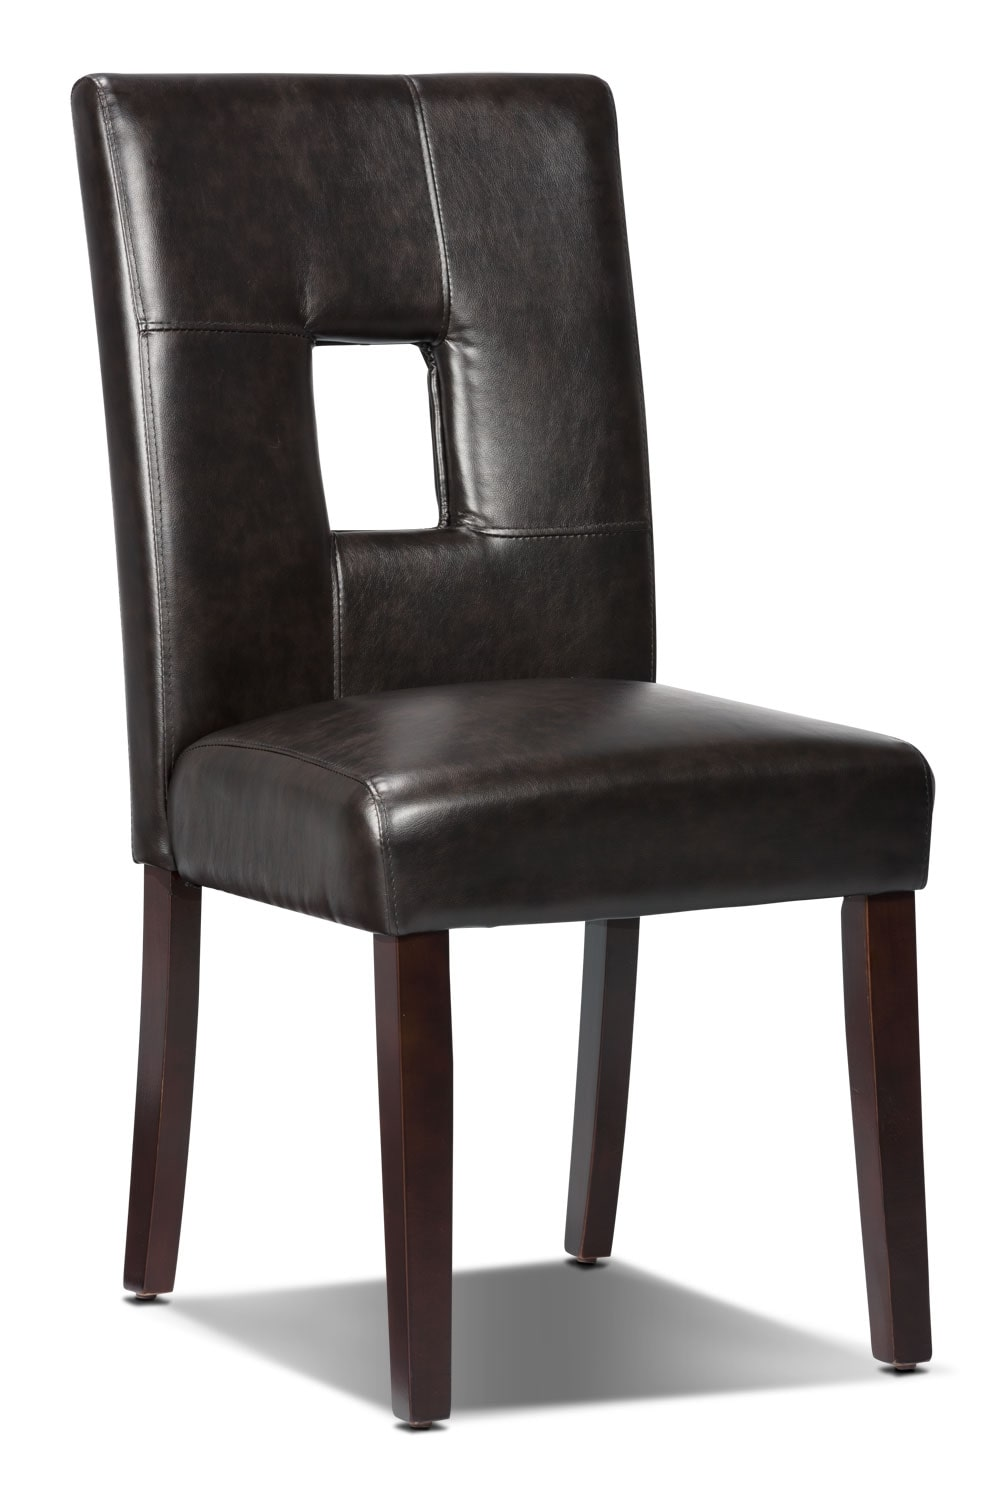 Mckena faux leather dining chair brown the brick for Colorful leather dining chairs